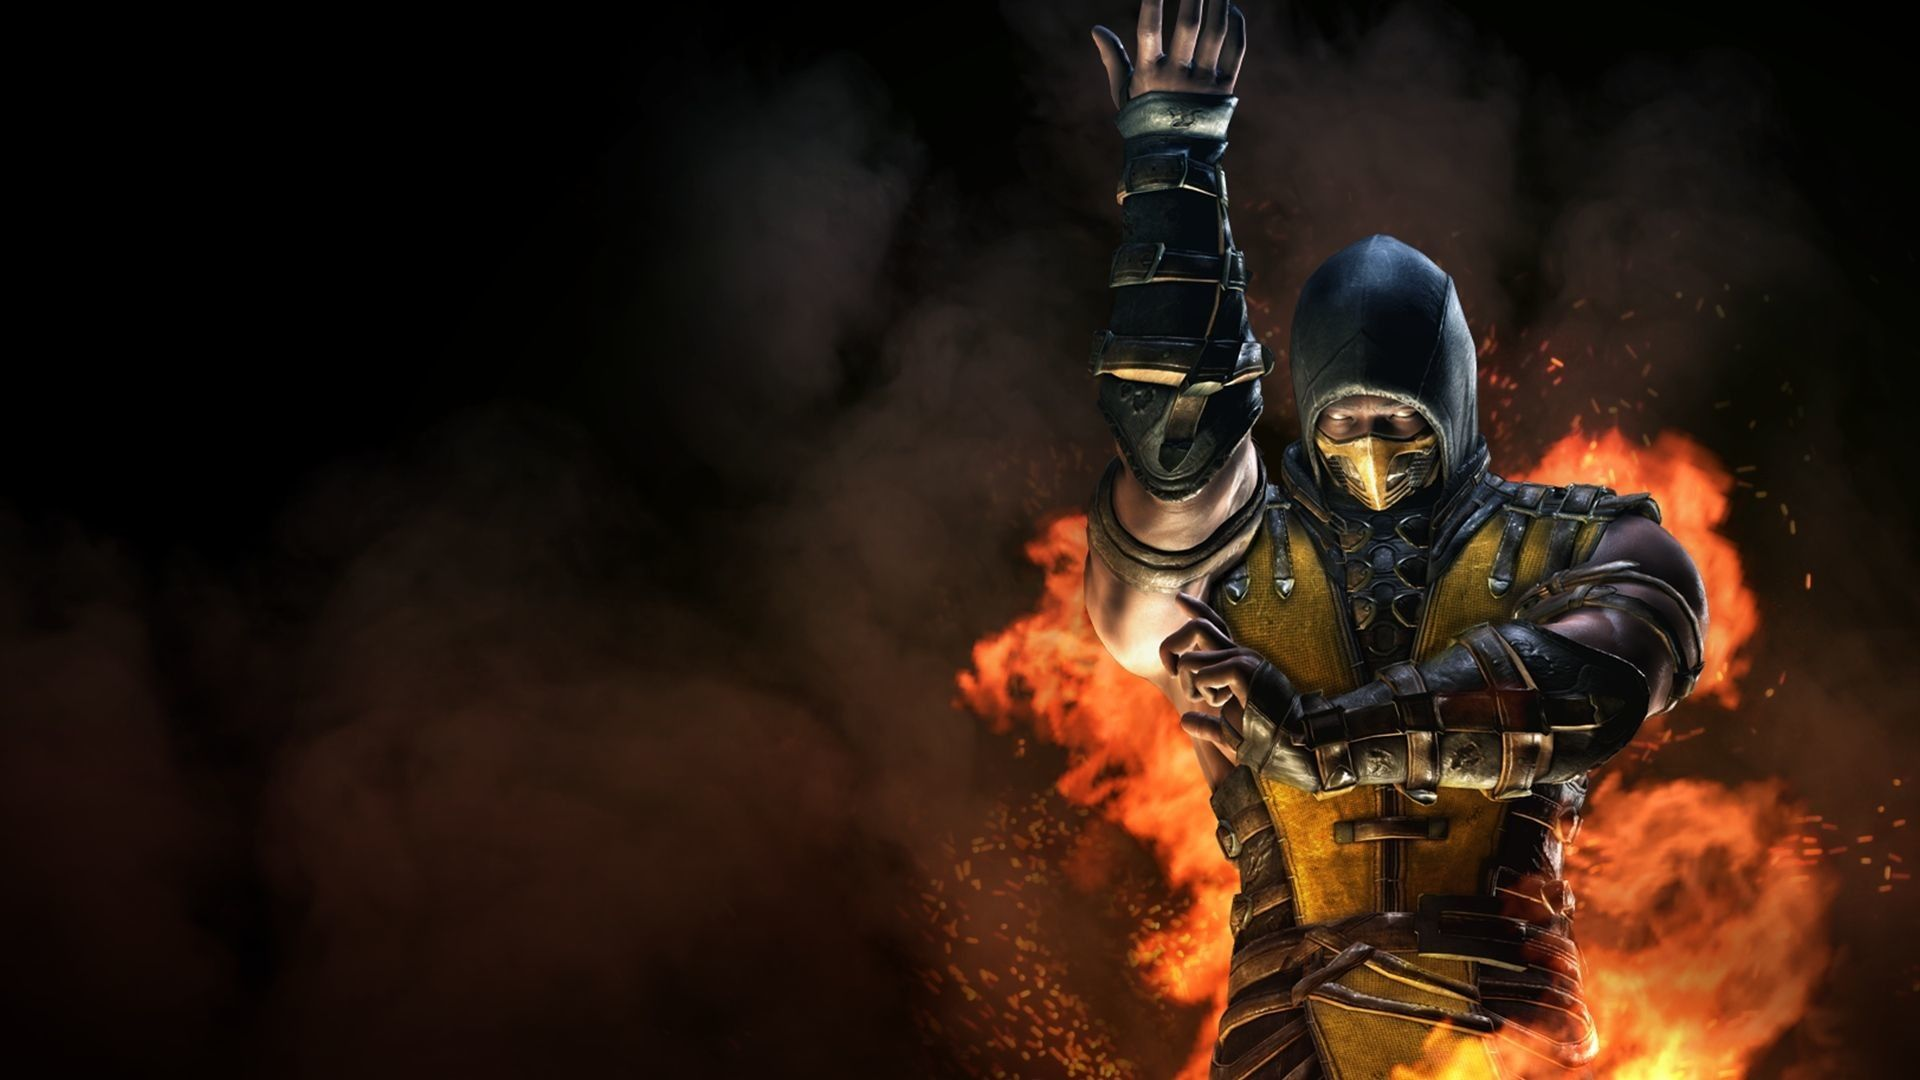 1920x1080 Mortal Kombat X Wallpapers (76+ background pictures)